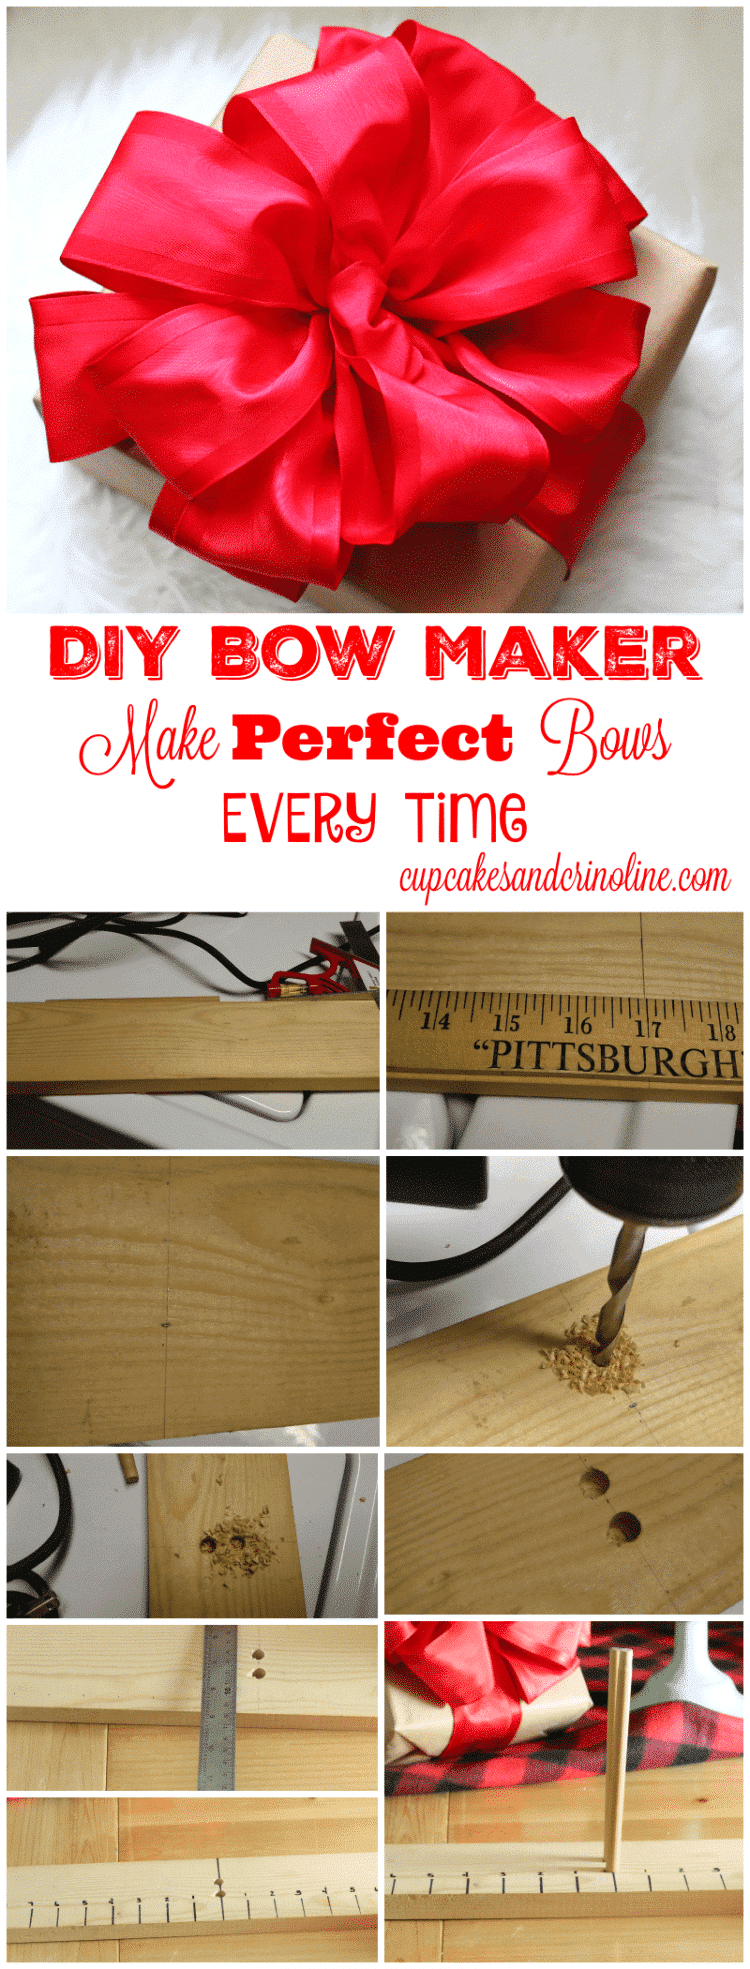 How to Make a Bow Maker Board - collage of steps used to DIY a bow maker board